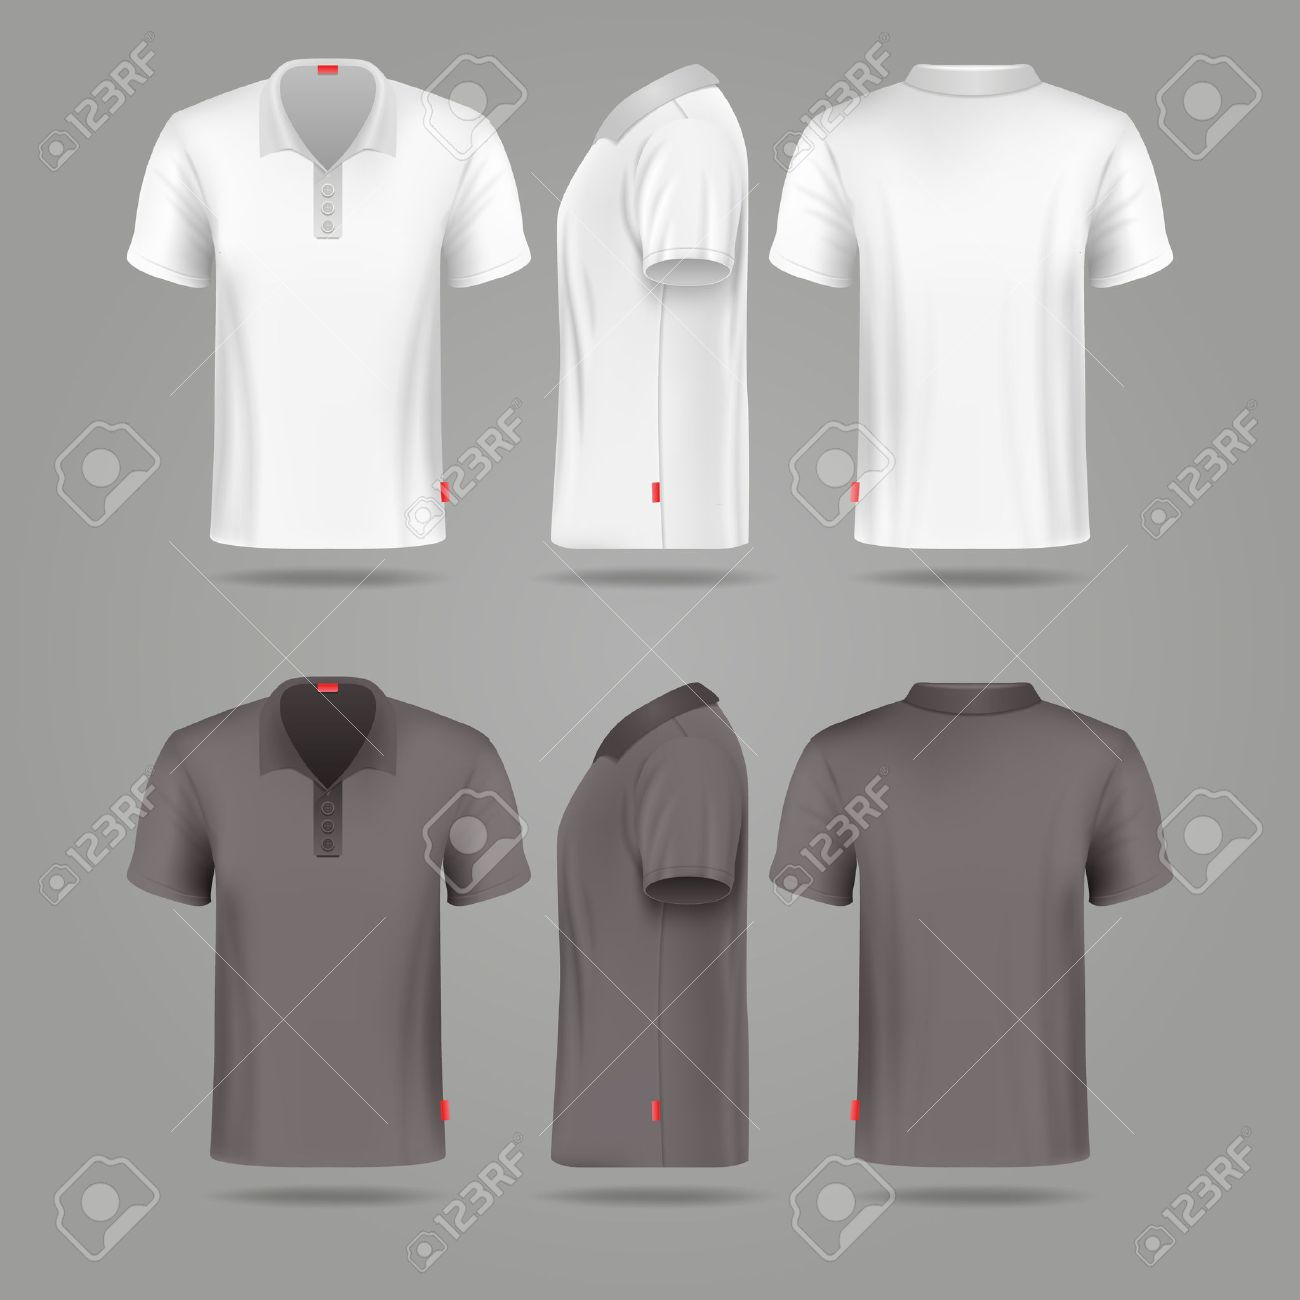 e152c285 Vector - White black mens polo t-shirt front back and side views mockups.  Template fashion tshirt for sport illustration